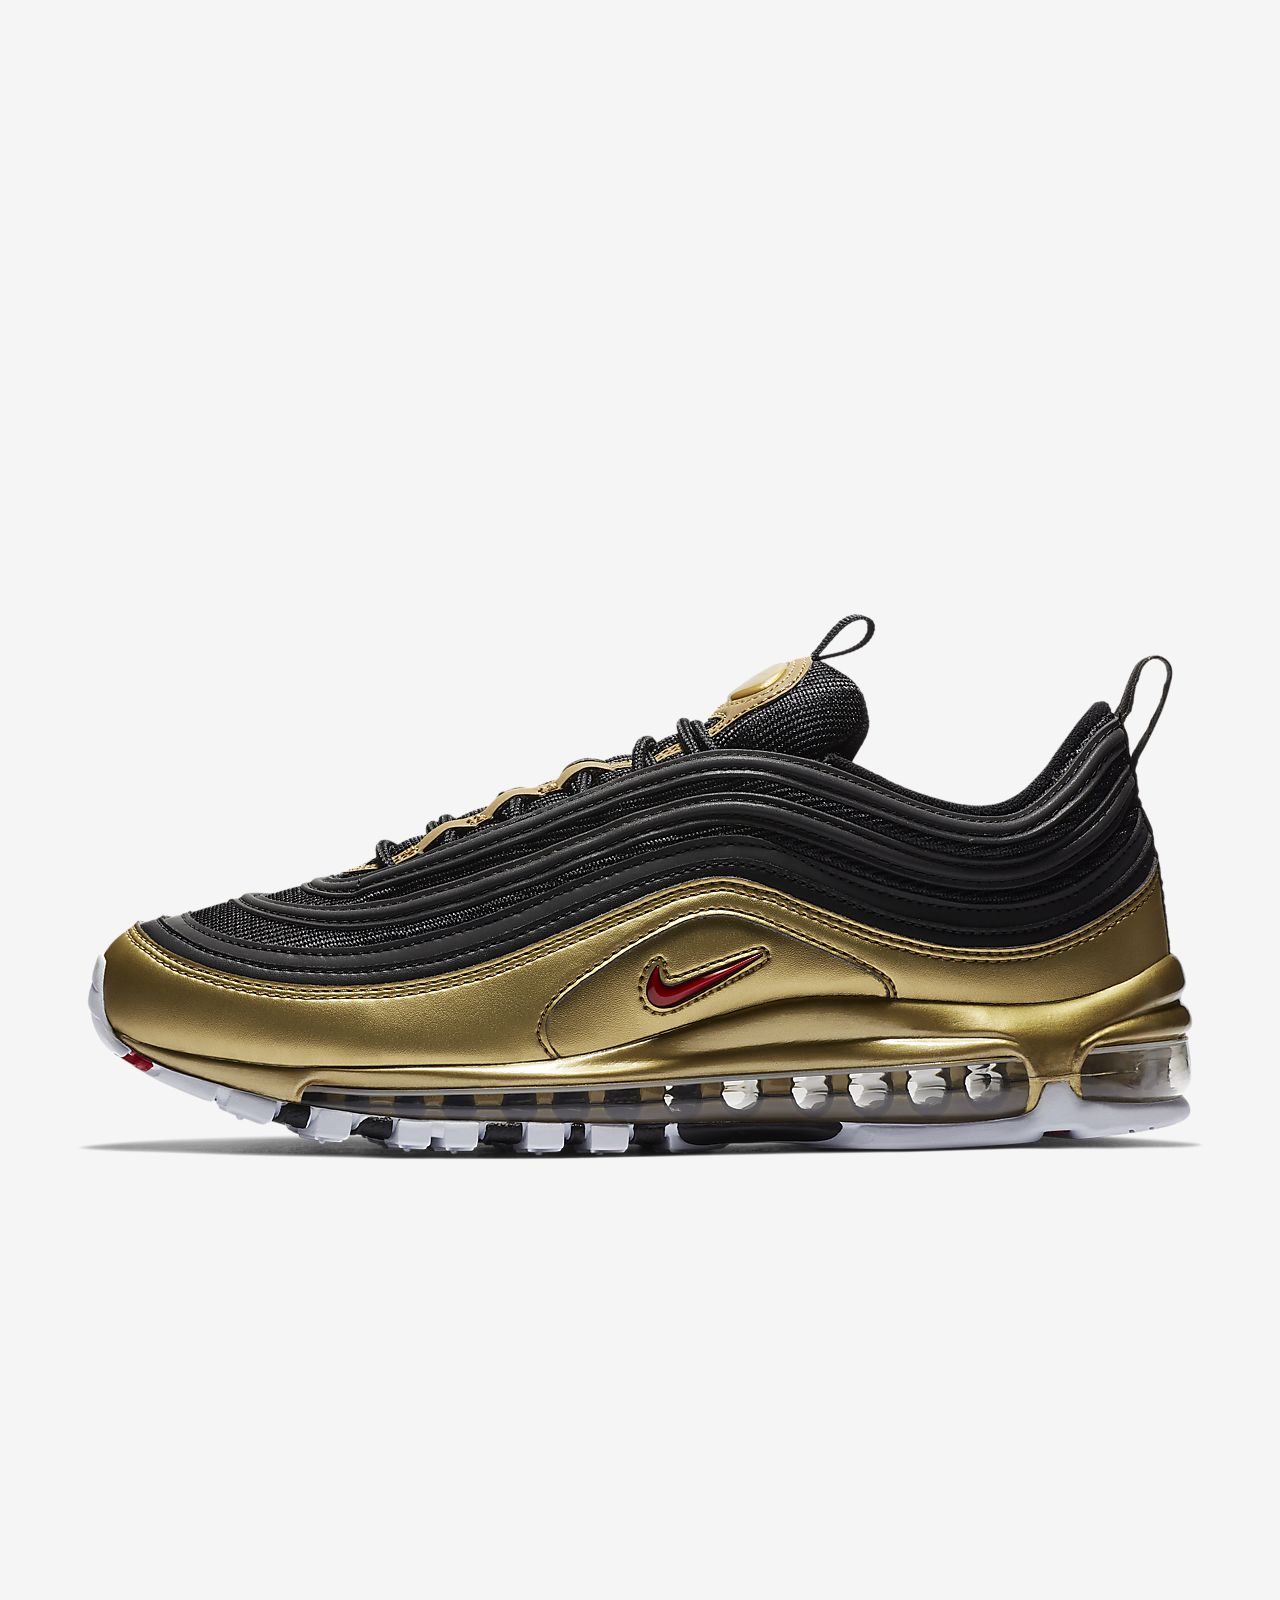 save off 76316 12c90 ... Nike Air Max 97 QS Men s Shoe